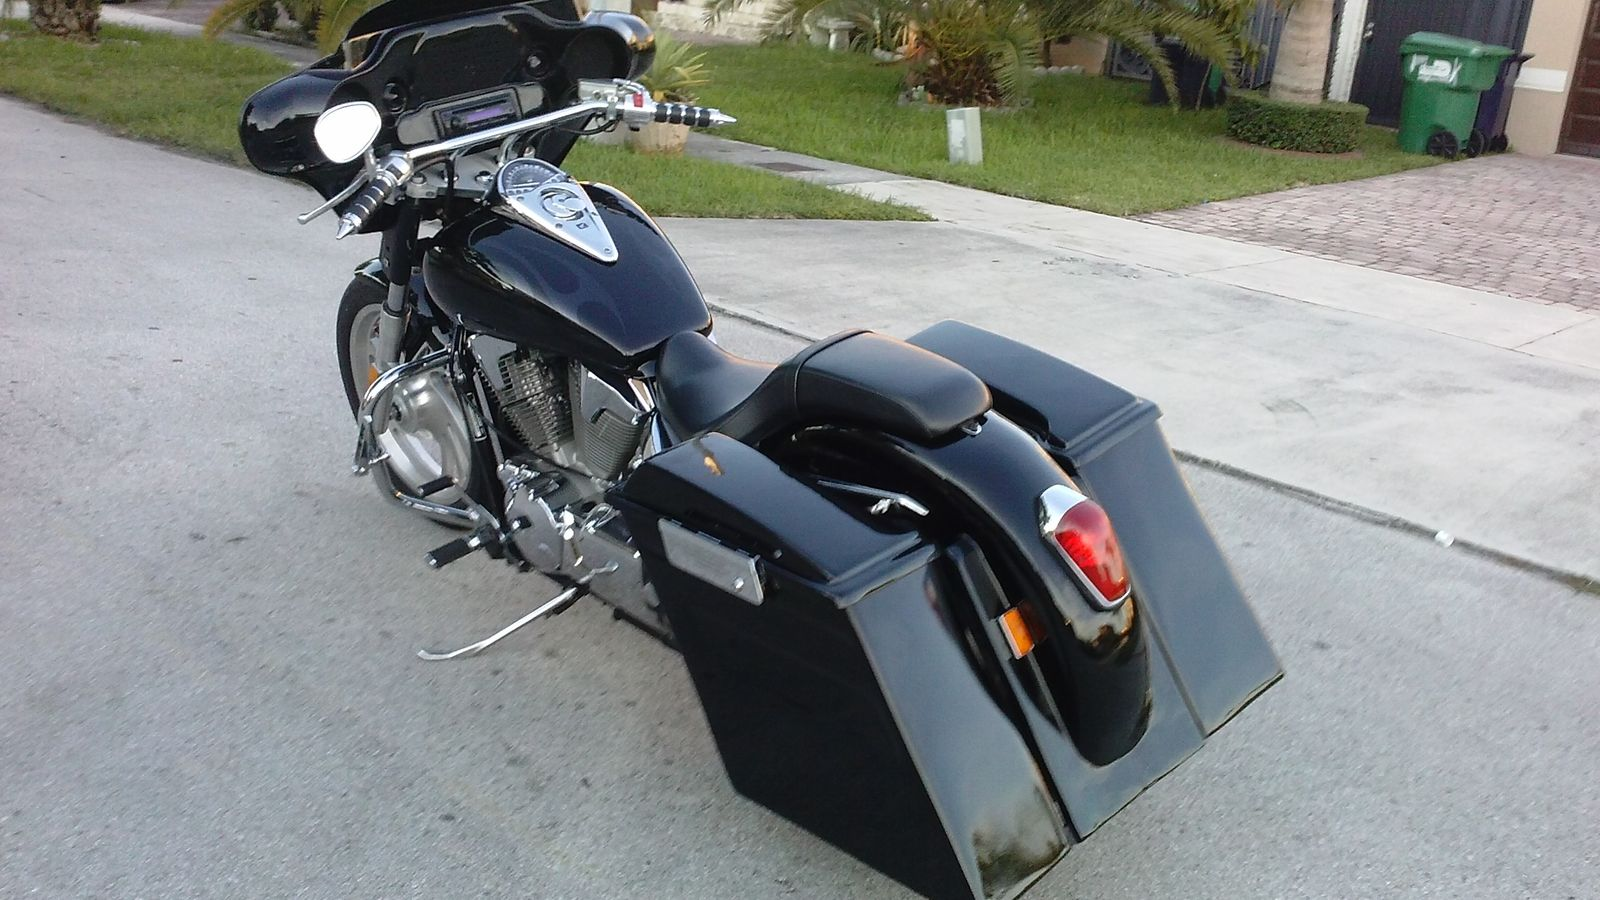 Motorcycle Dealers Near Merrillville In together with Vtx Led Light Jackets moreover 2007 Honda Vtx1300r Retro Ready To Ride 294438 furthermore Ch ion Hard Bags together with Whaletail And Standard Tank Bib Listing. on 2005 honda vtx 1800c